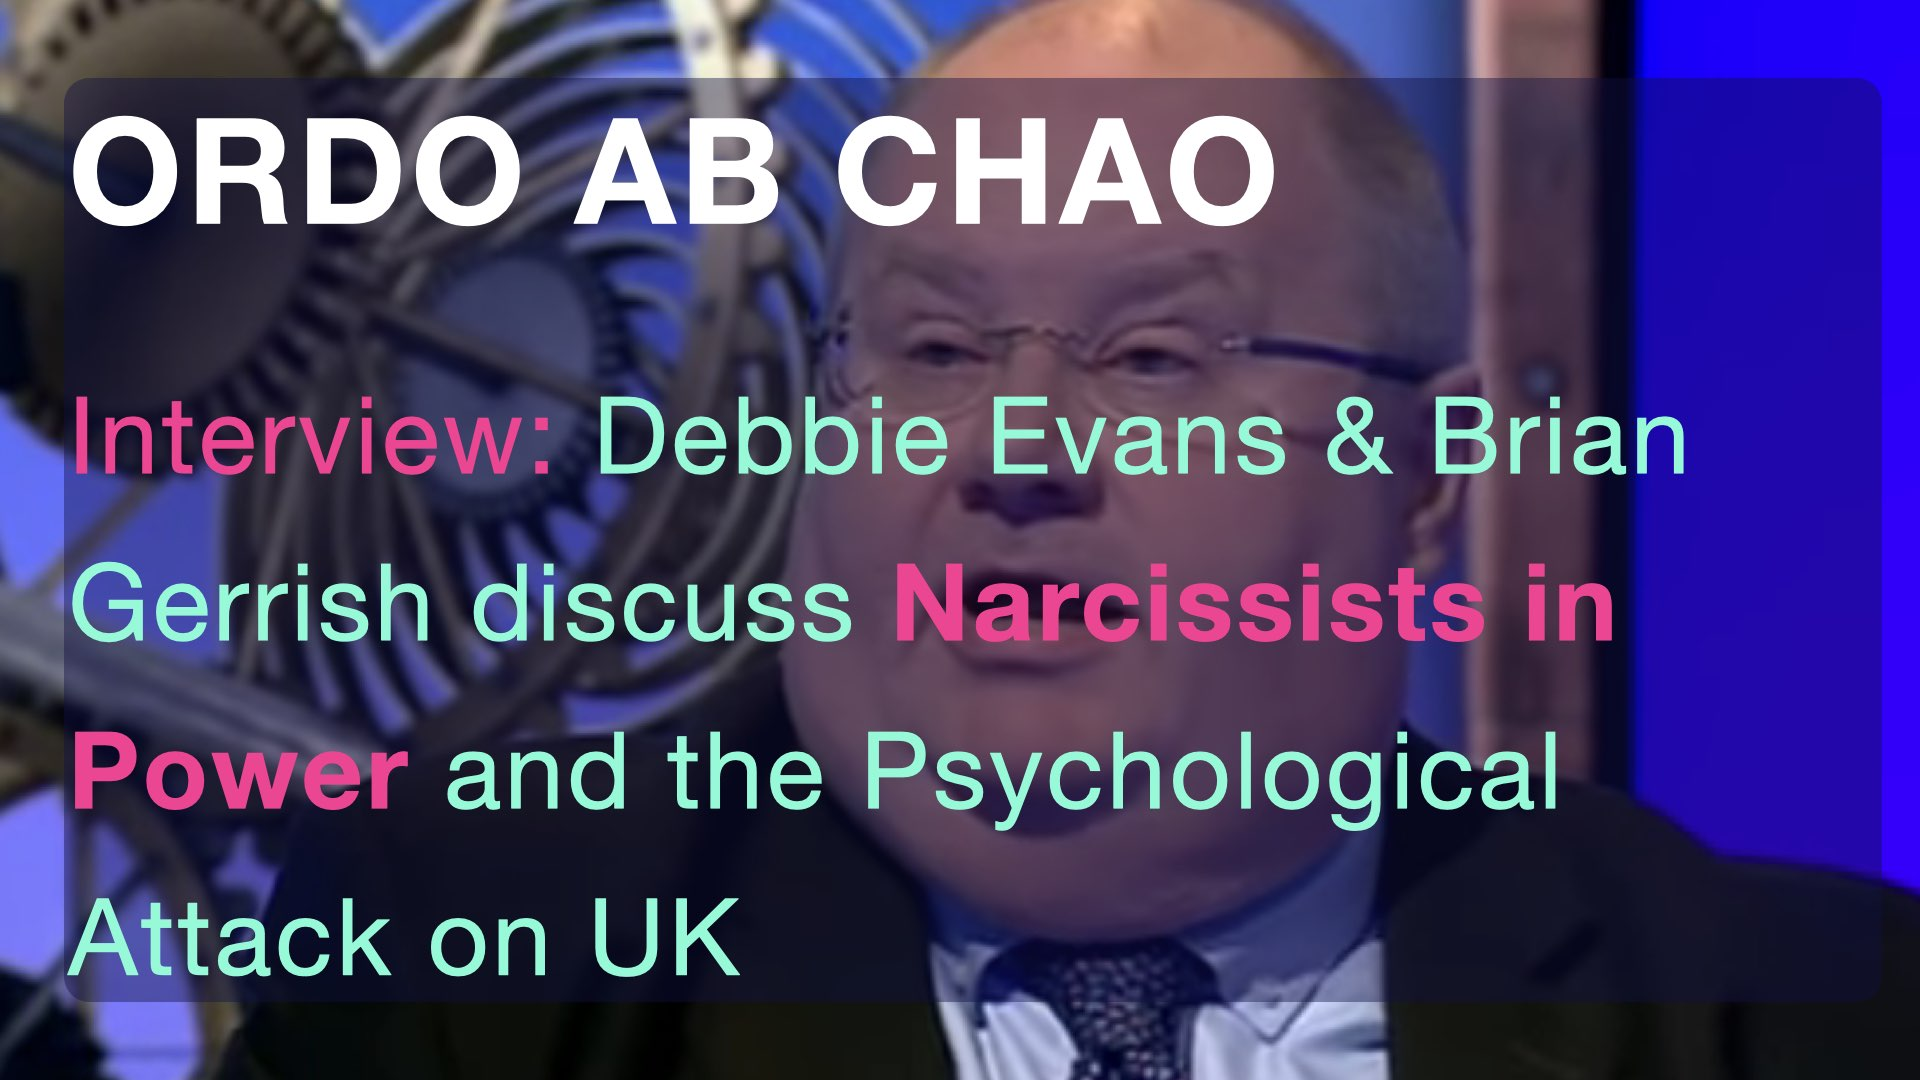 Narcissists and the Psychological Attack on UK